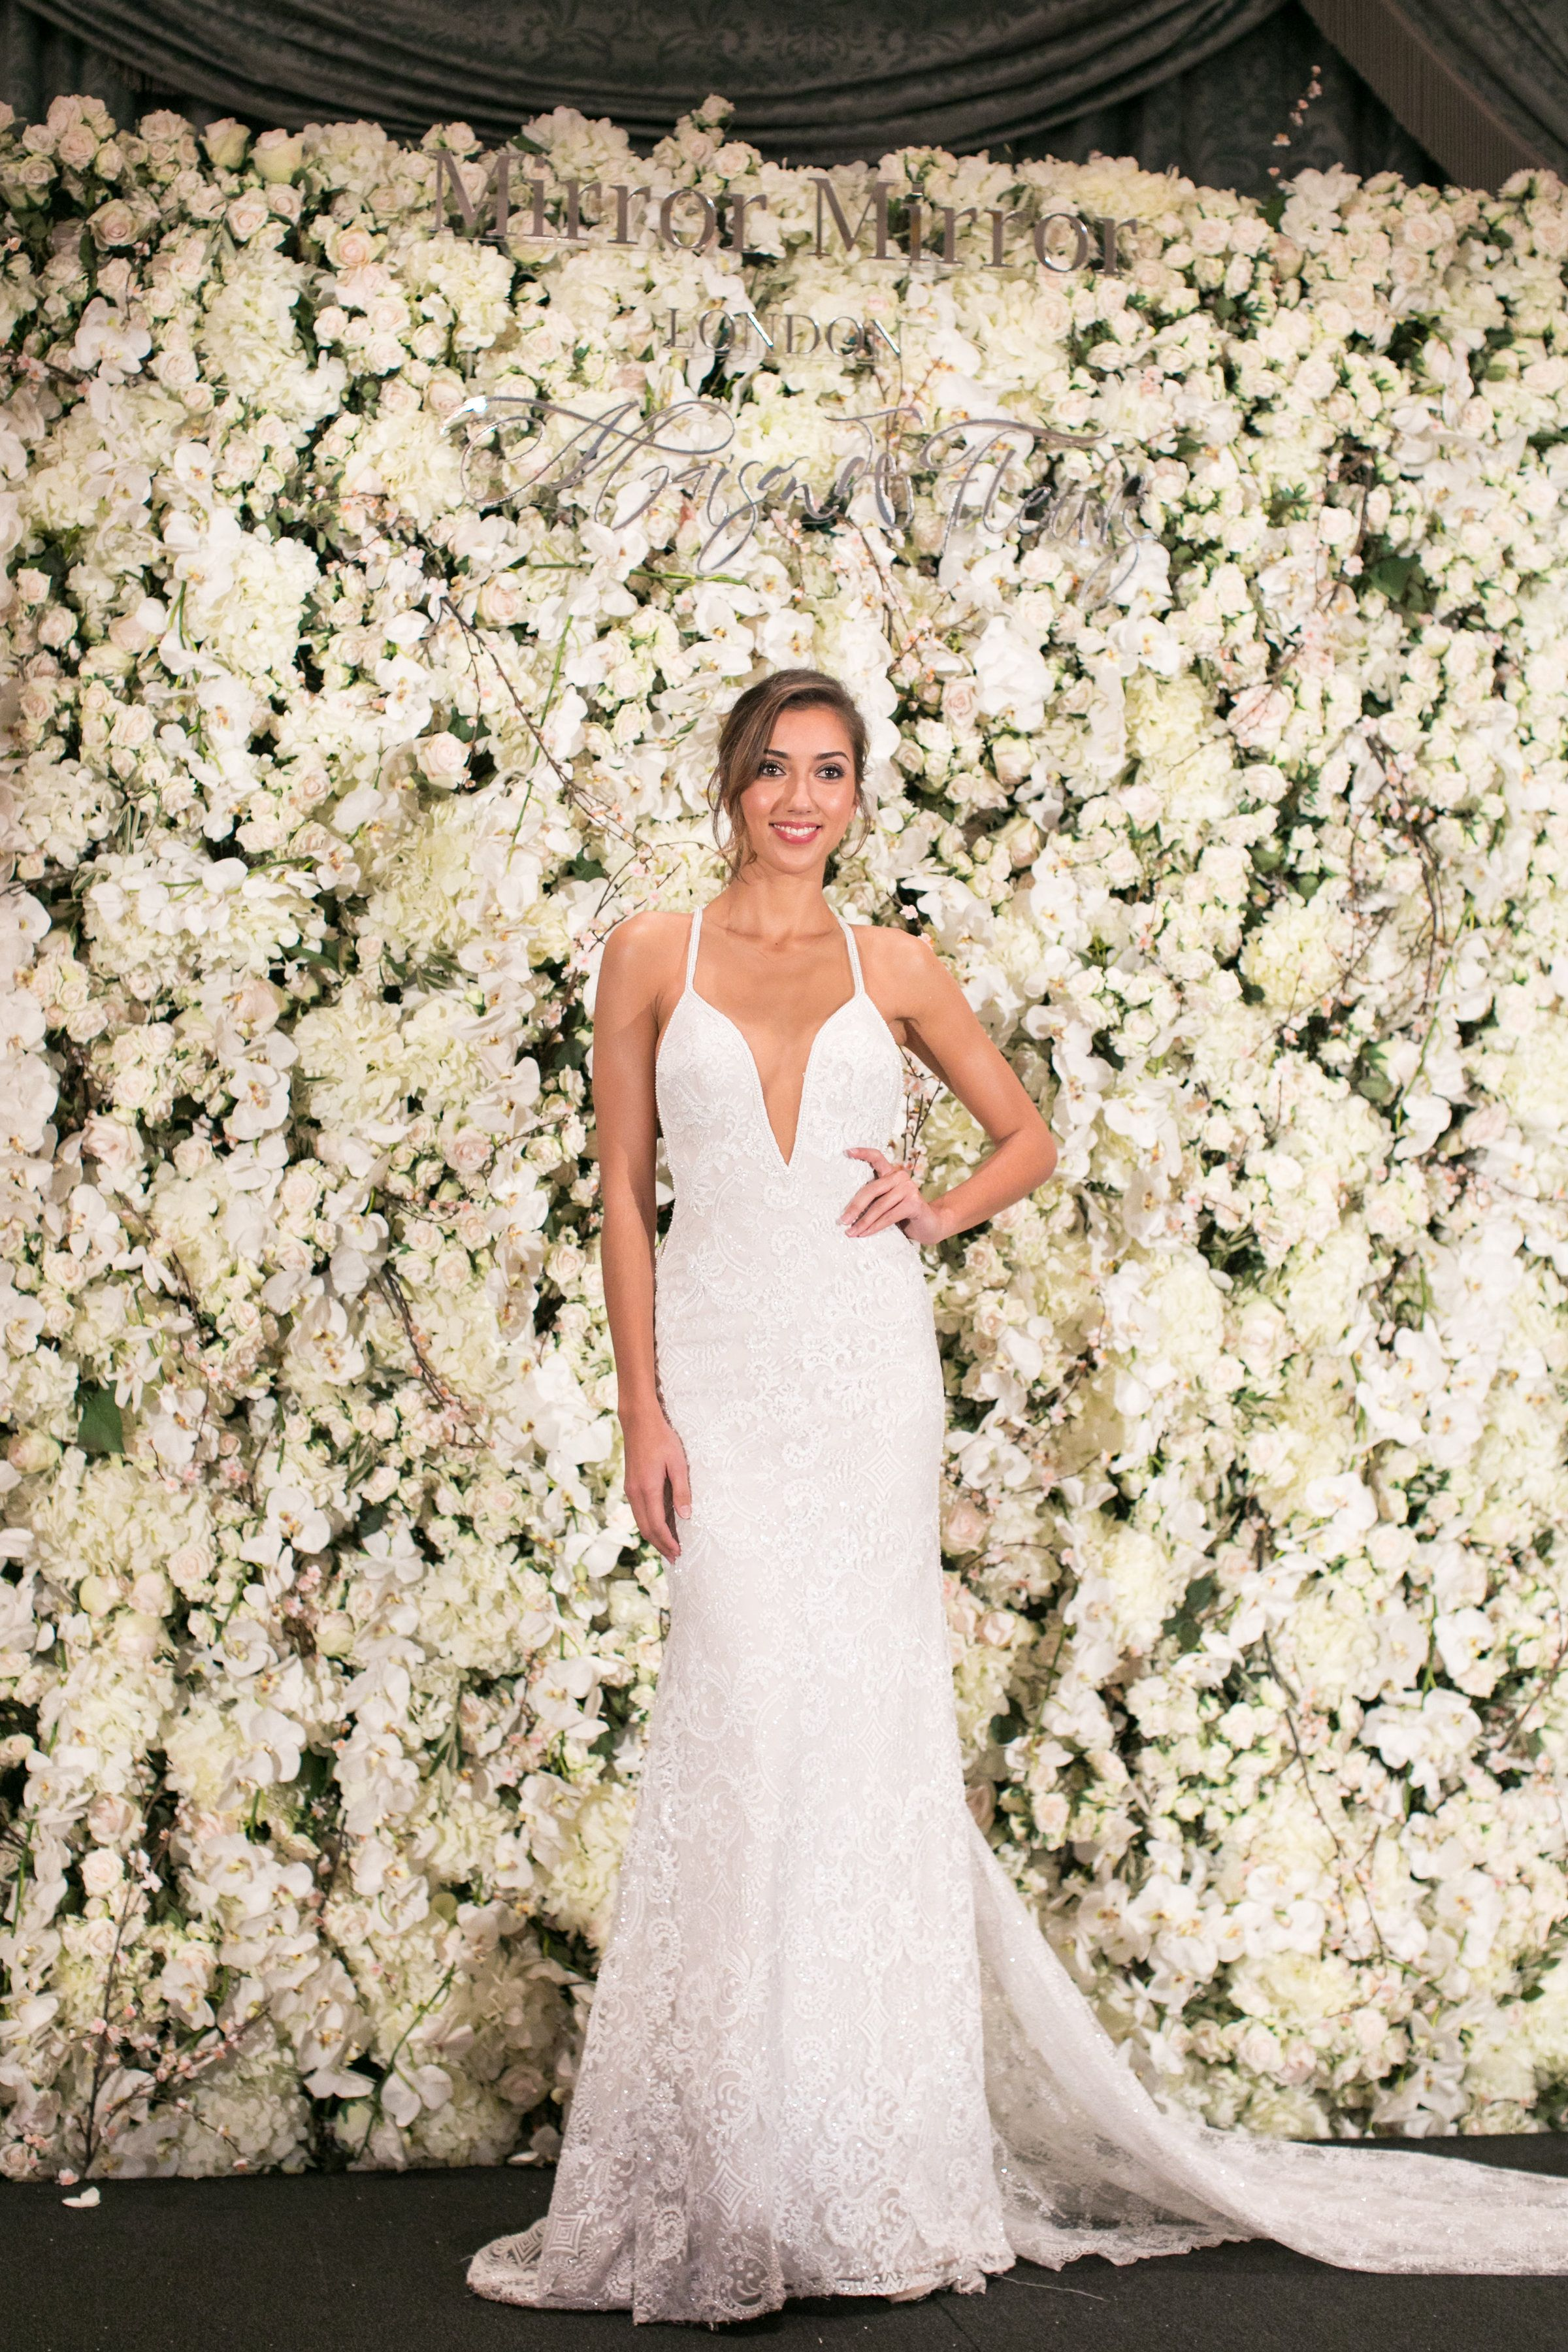 """collection """"Ivory&White"""" by Nurit Hen, fashion show arranged by @mirrormirrorcouture and @bridesmagazine photographers: RobertaFacchini - http://www.robertafacchini.com #mirrormirrorcouture #Bridesmagazine #thesavoylondon.     2017 collection """"Ivory&White"""" WWW.NURIT-HEN.COM Nurithenofficial@gmail.com"""